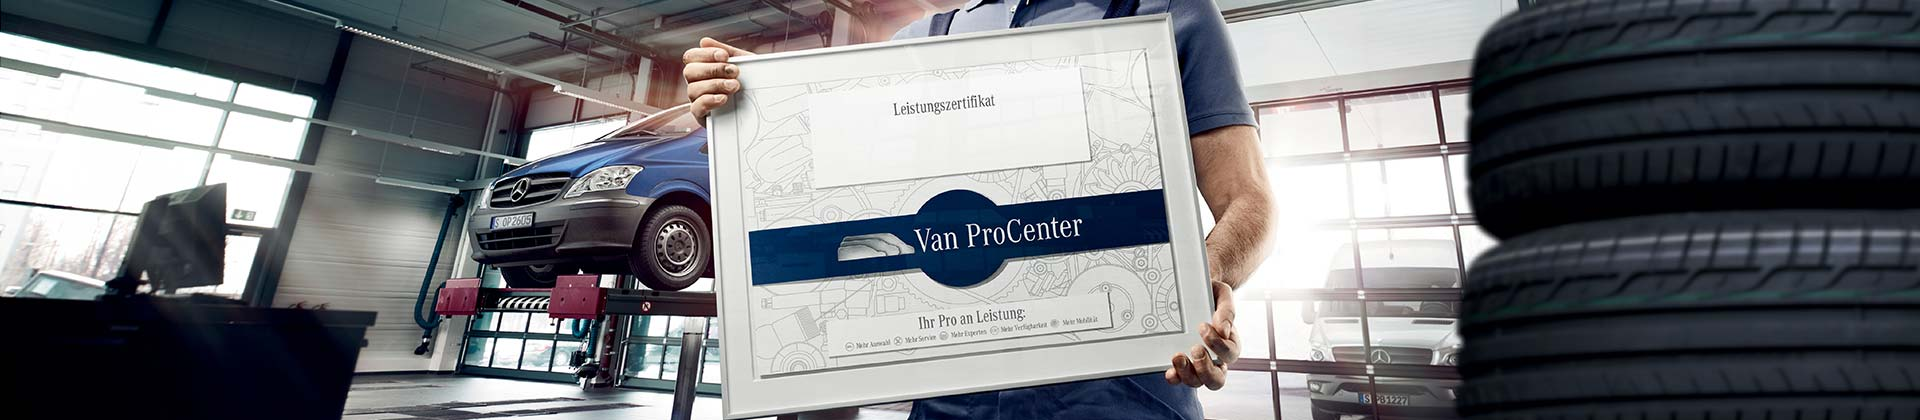 [Translate to Englisch:] Van ProCenter